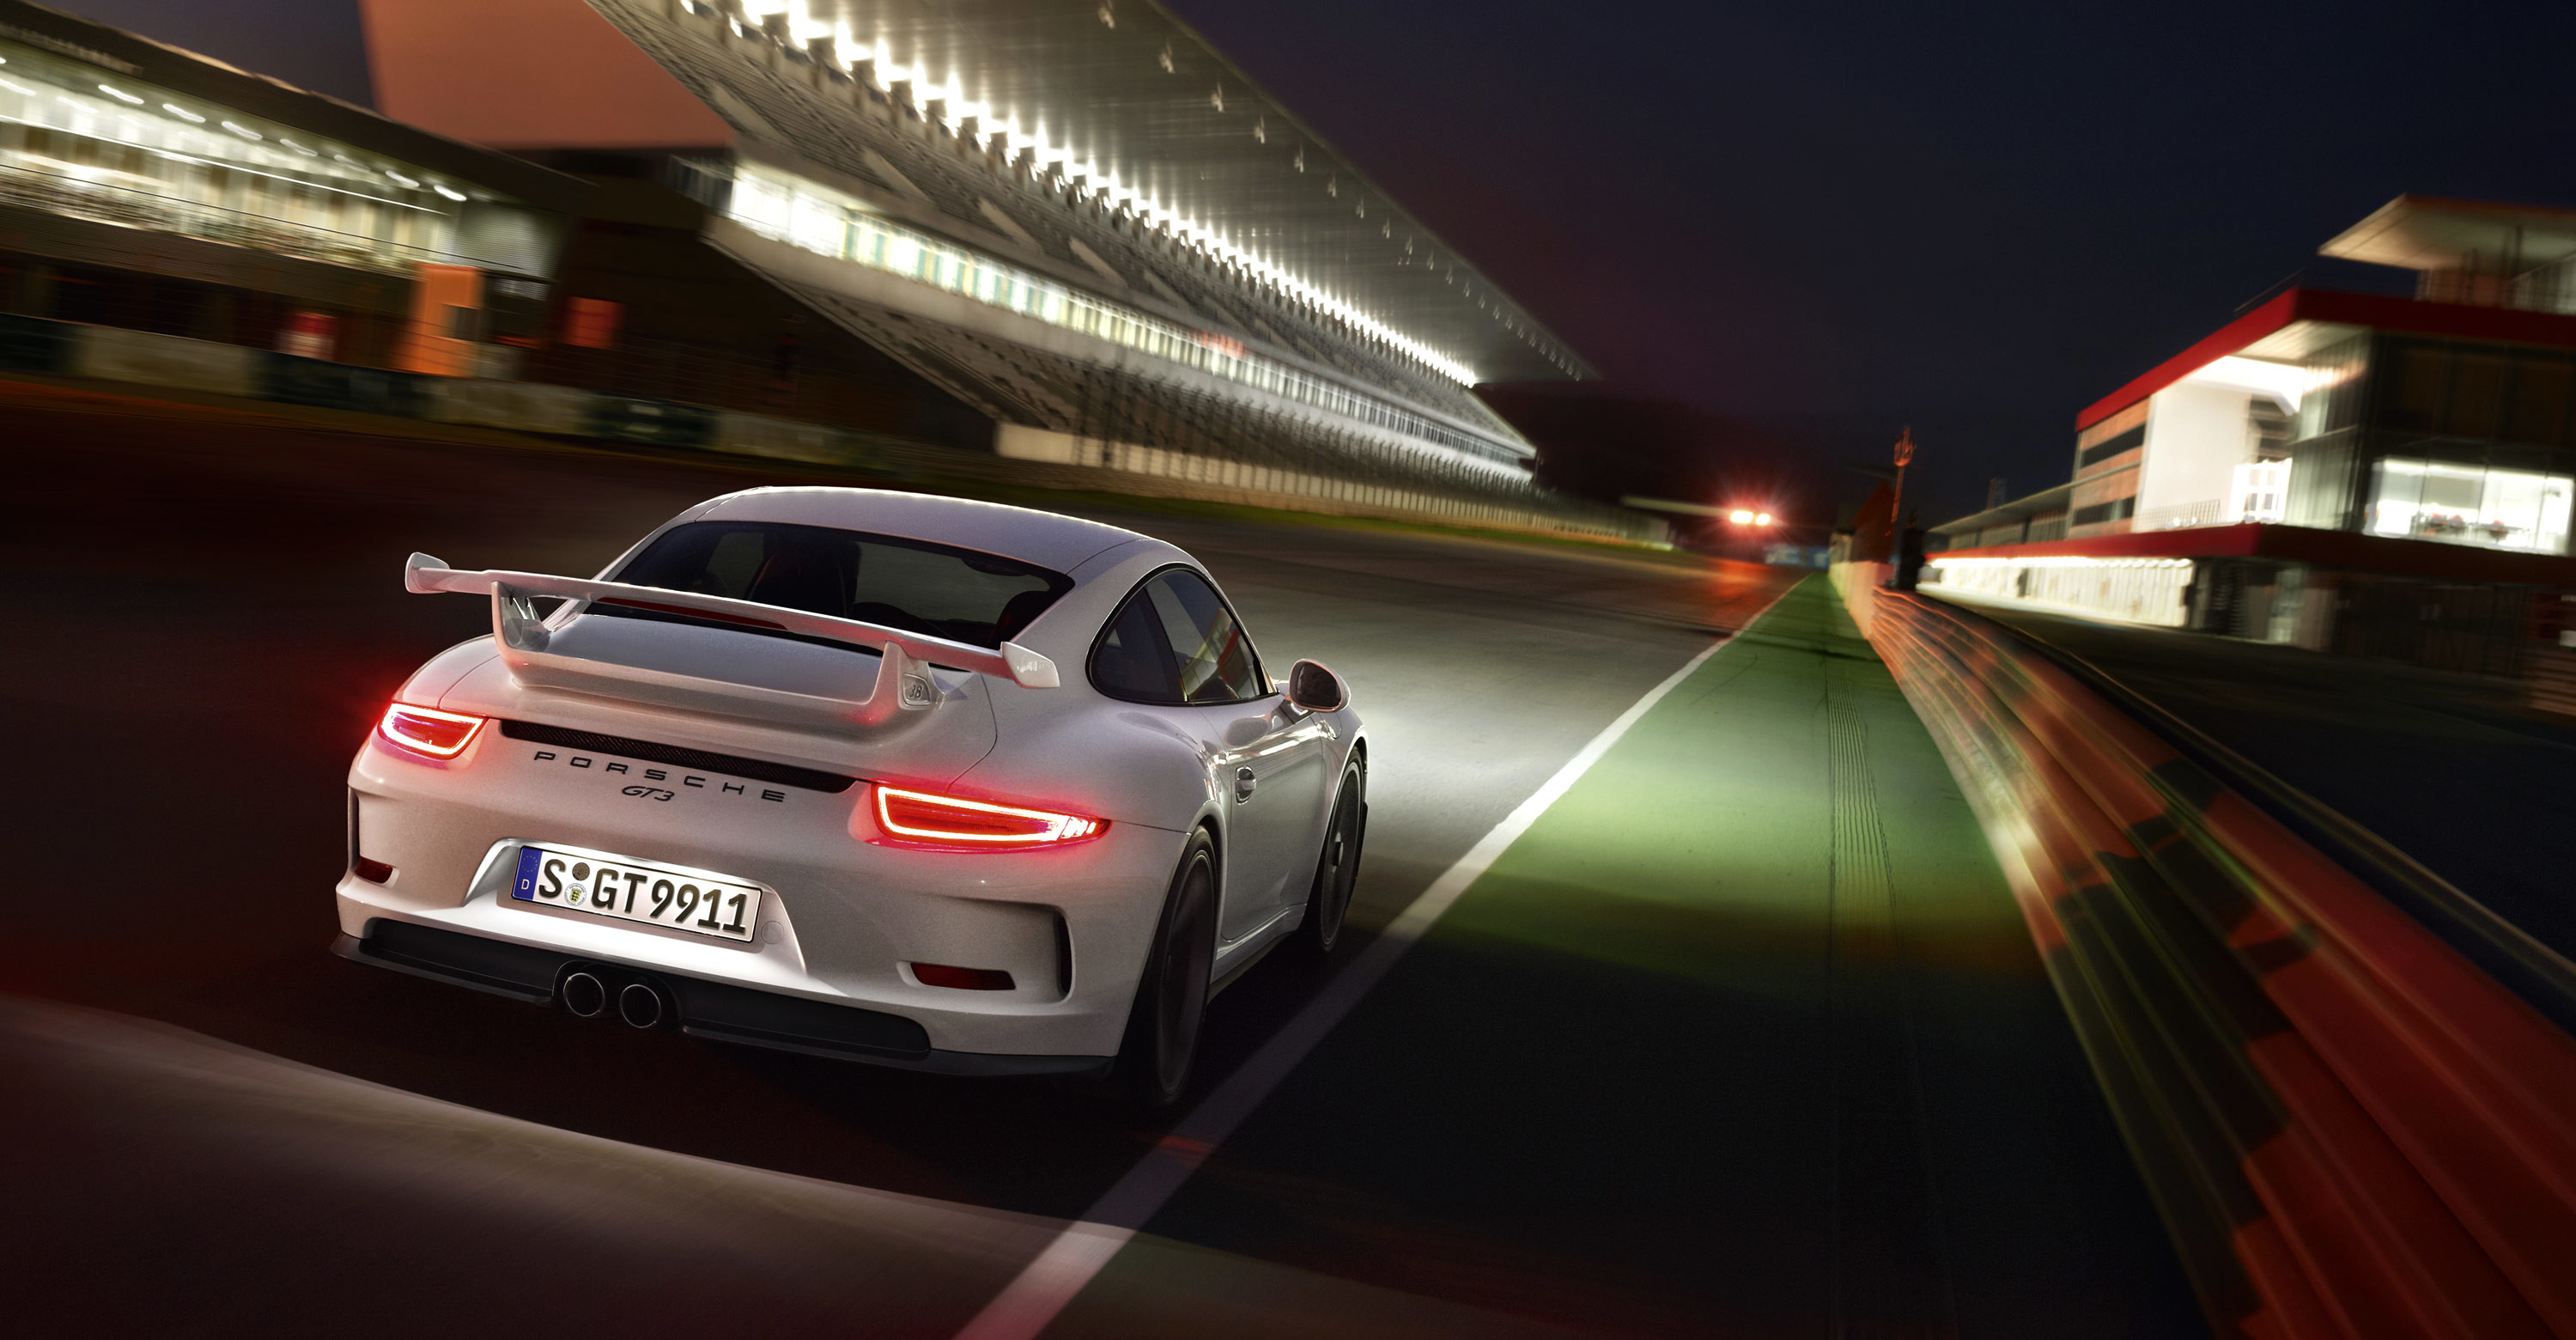 Porsche 911 Gt3 Wallpapers Group   Data-src /w/full/0/e/1/536114 - Porsche 911 Gt3 Light - HD Wallpaper